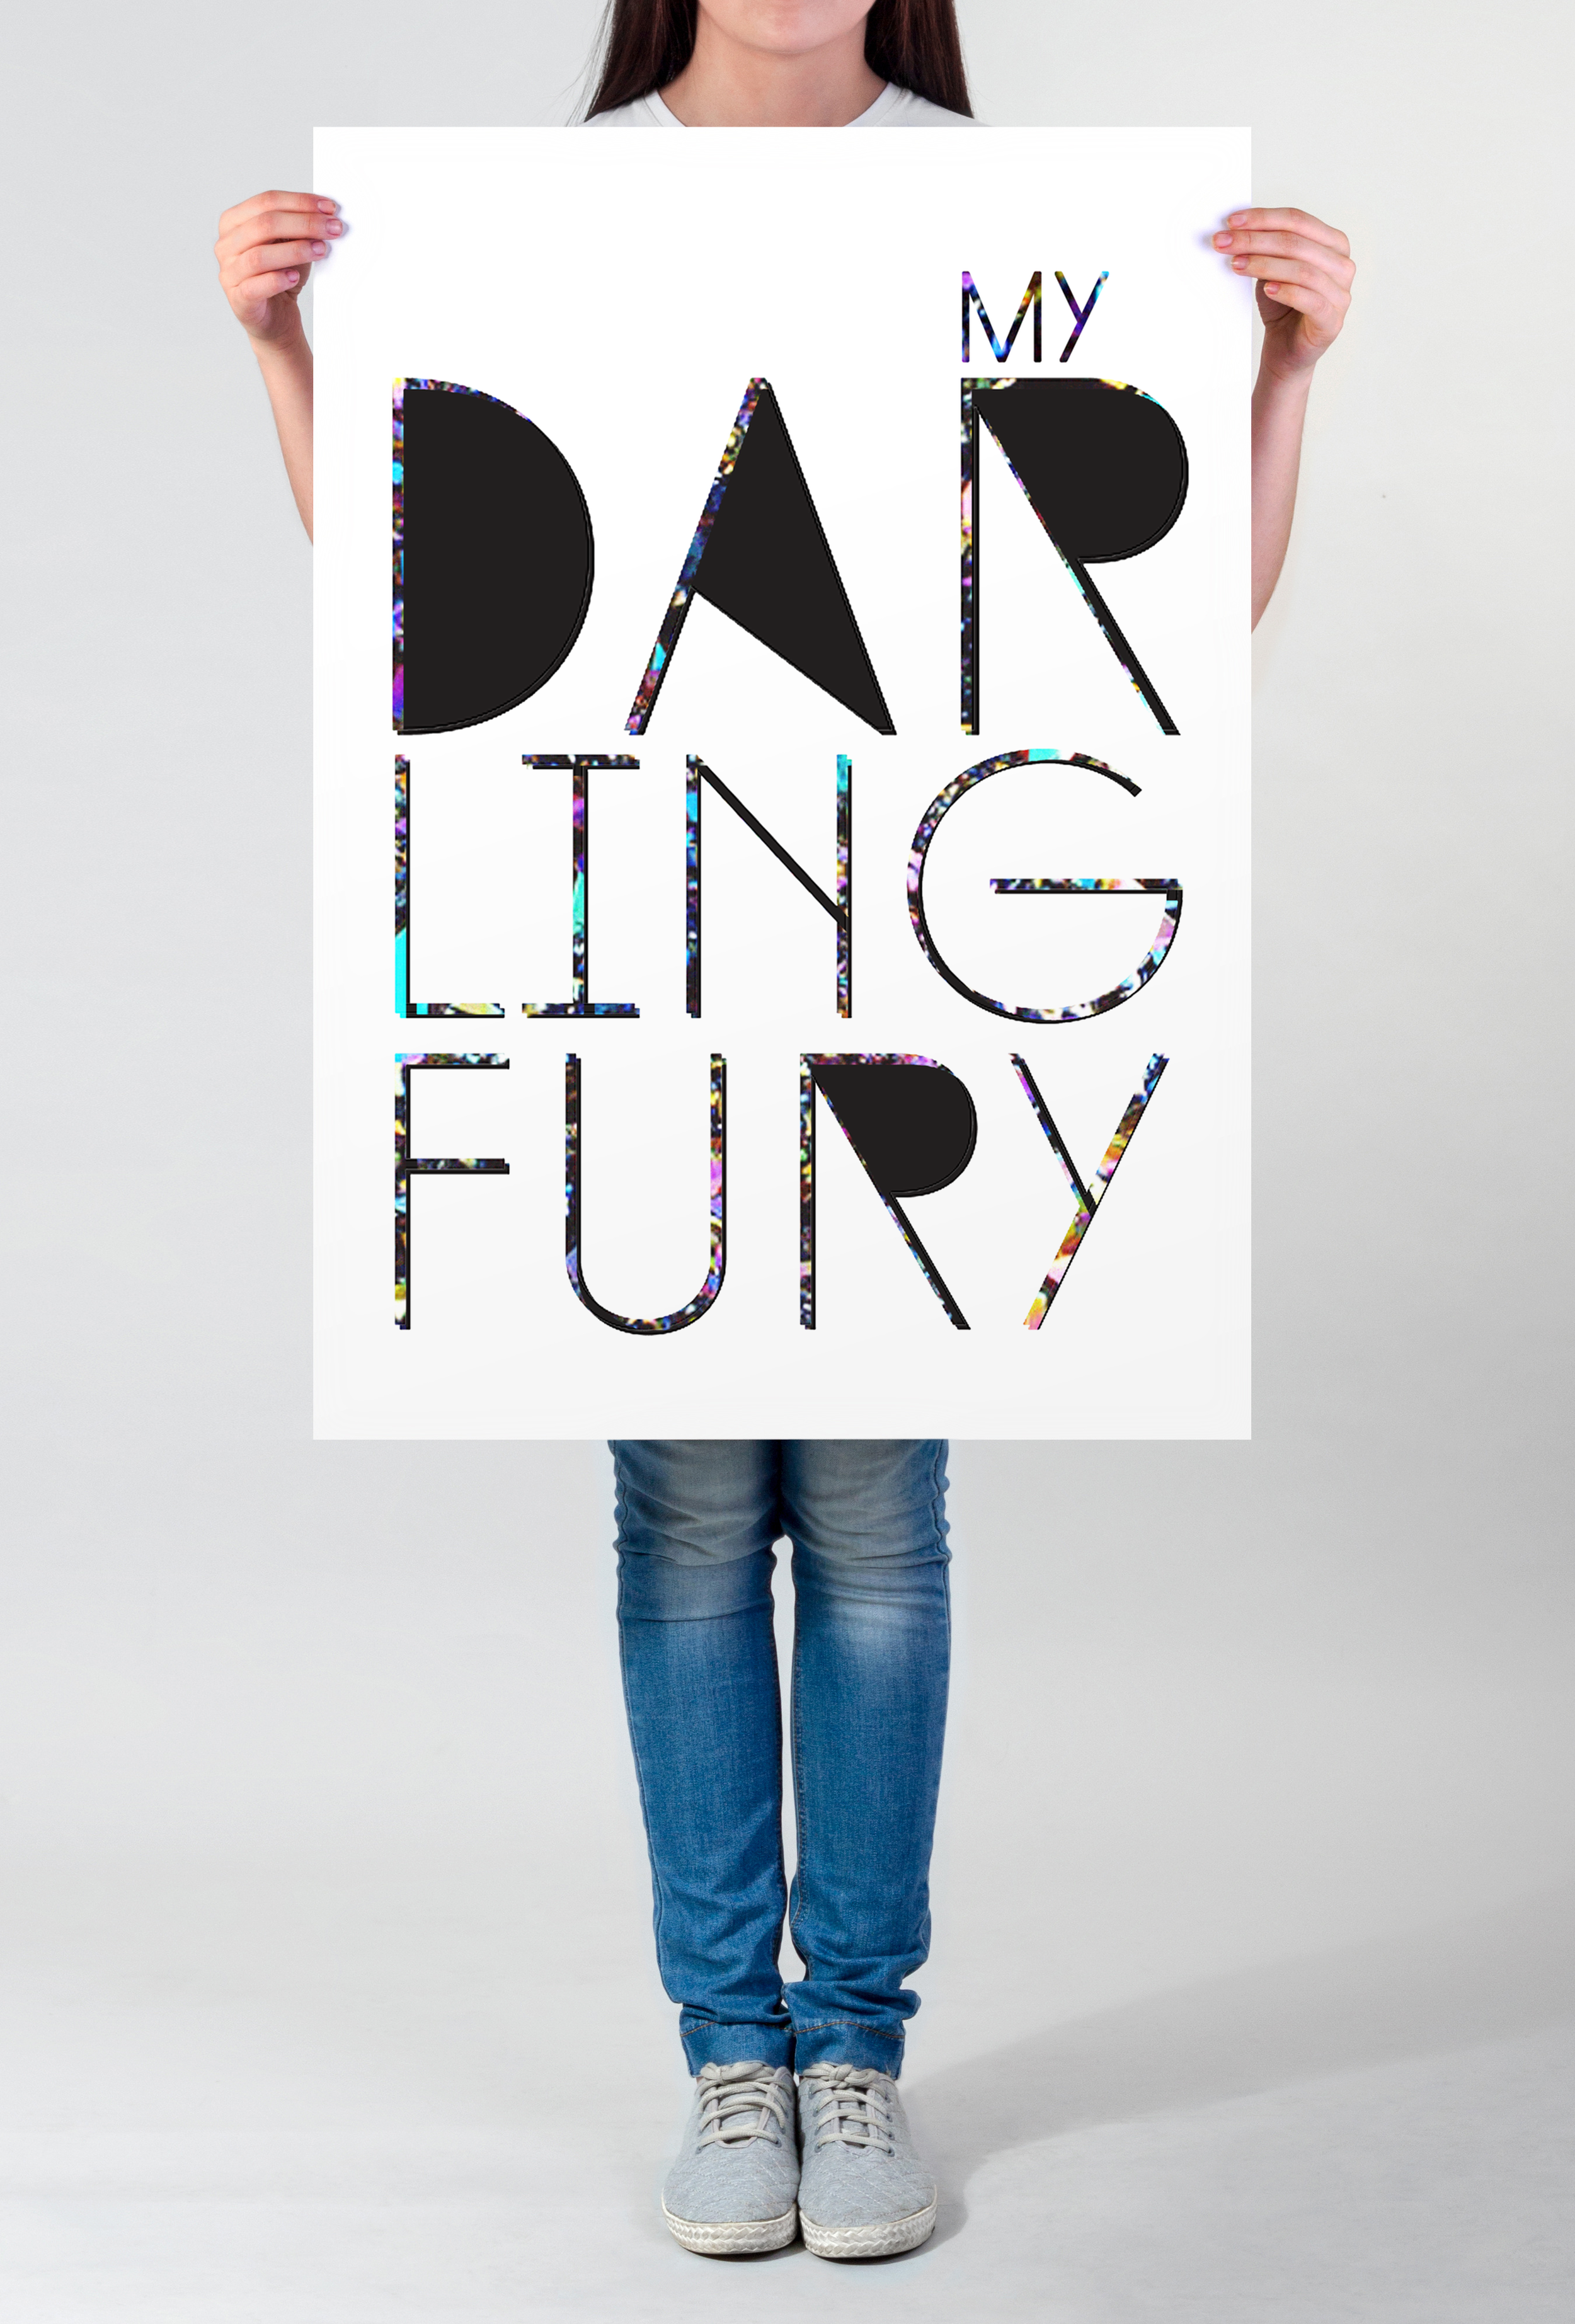 // Deliverable : Typography Poster